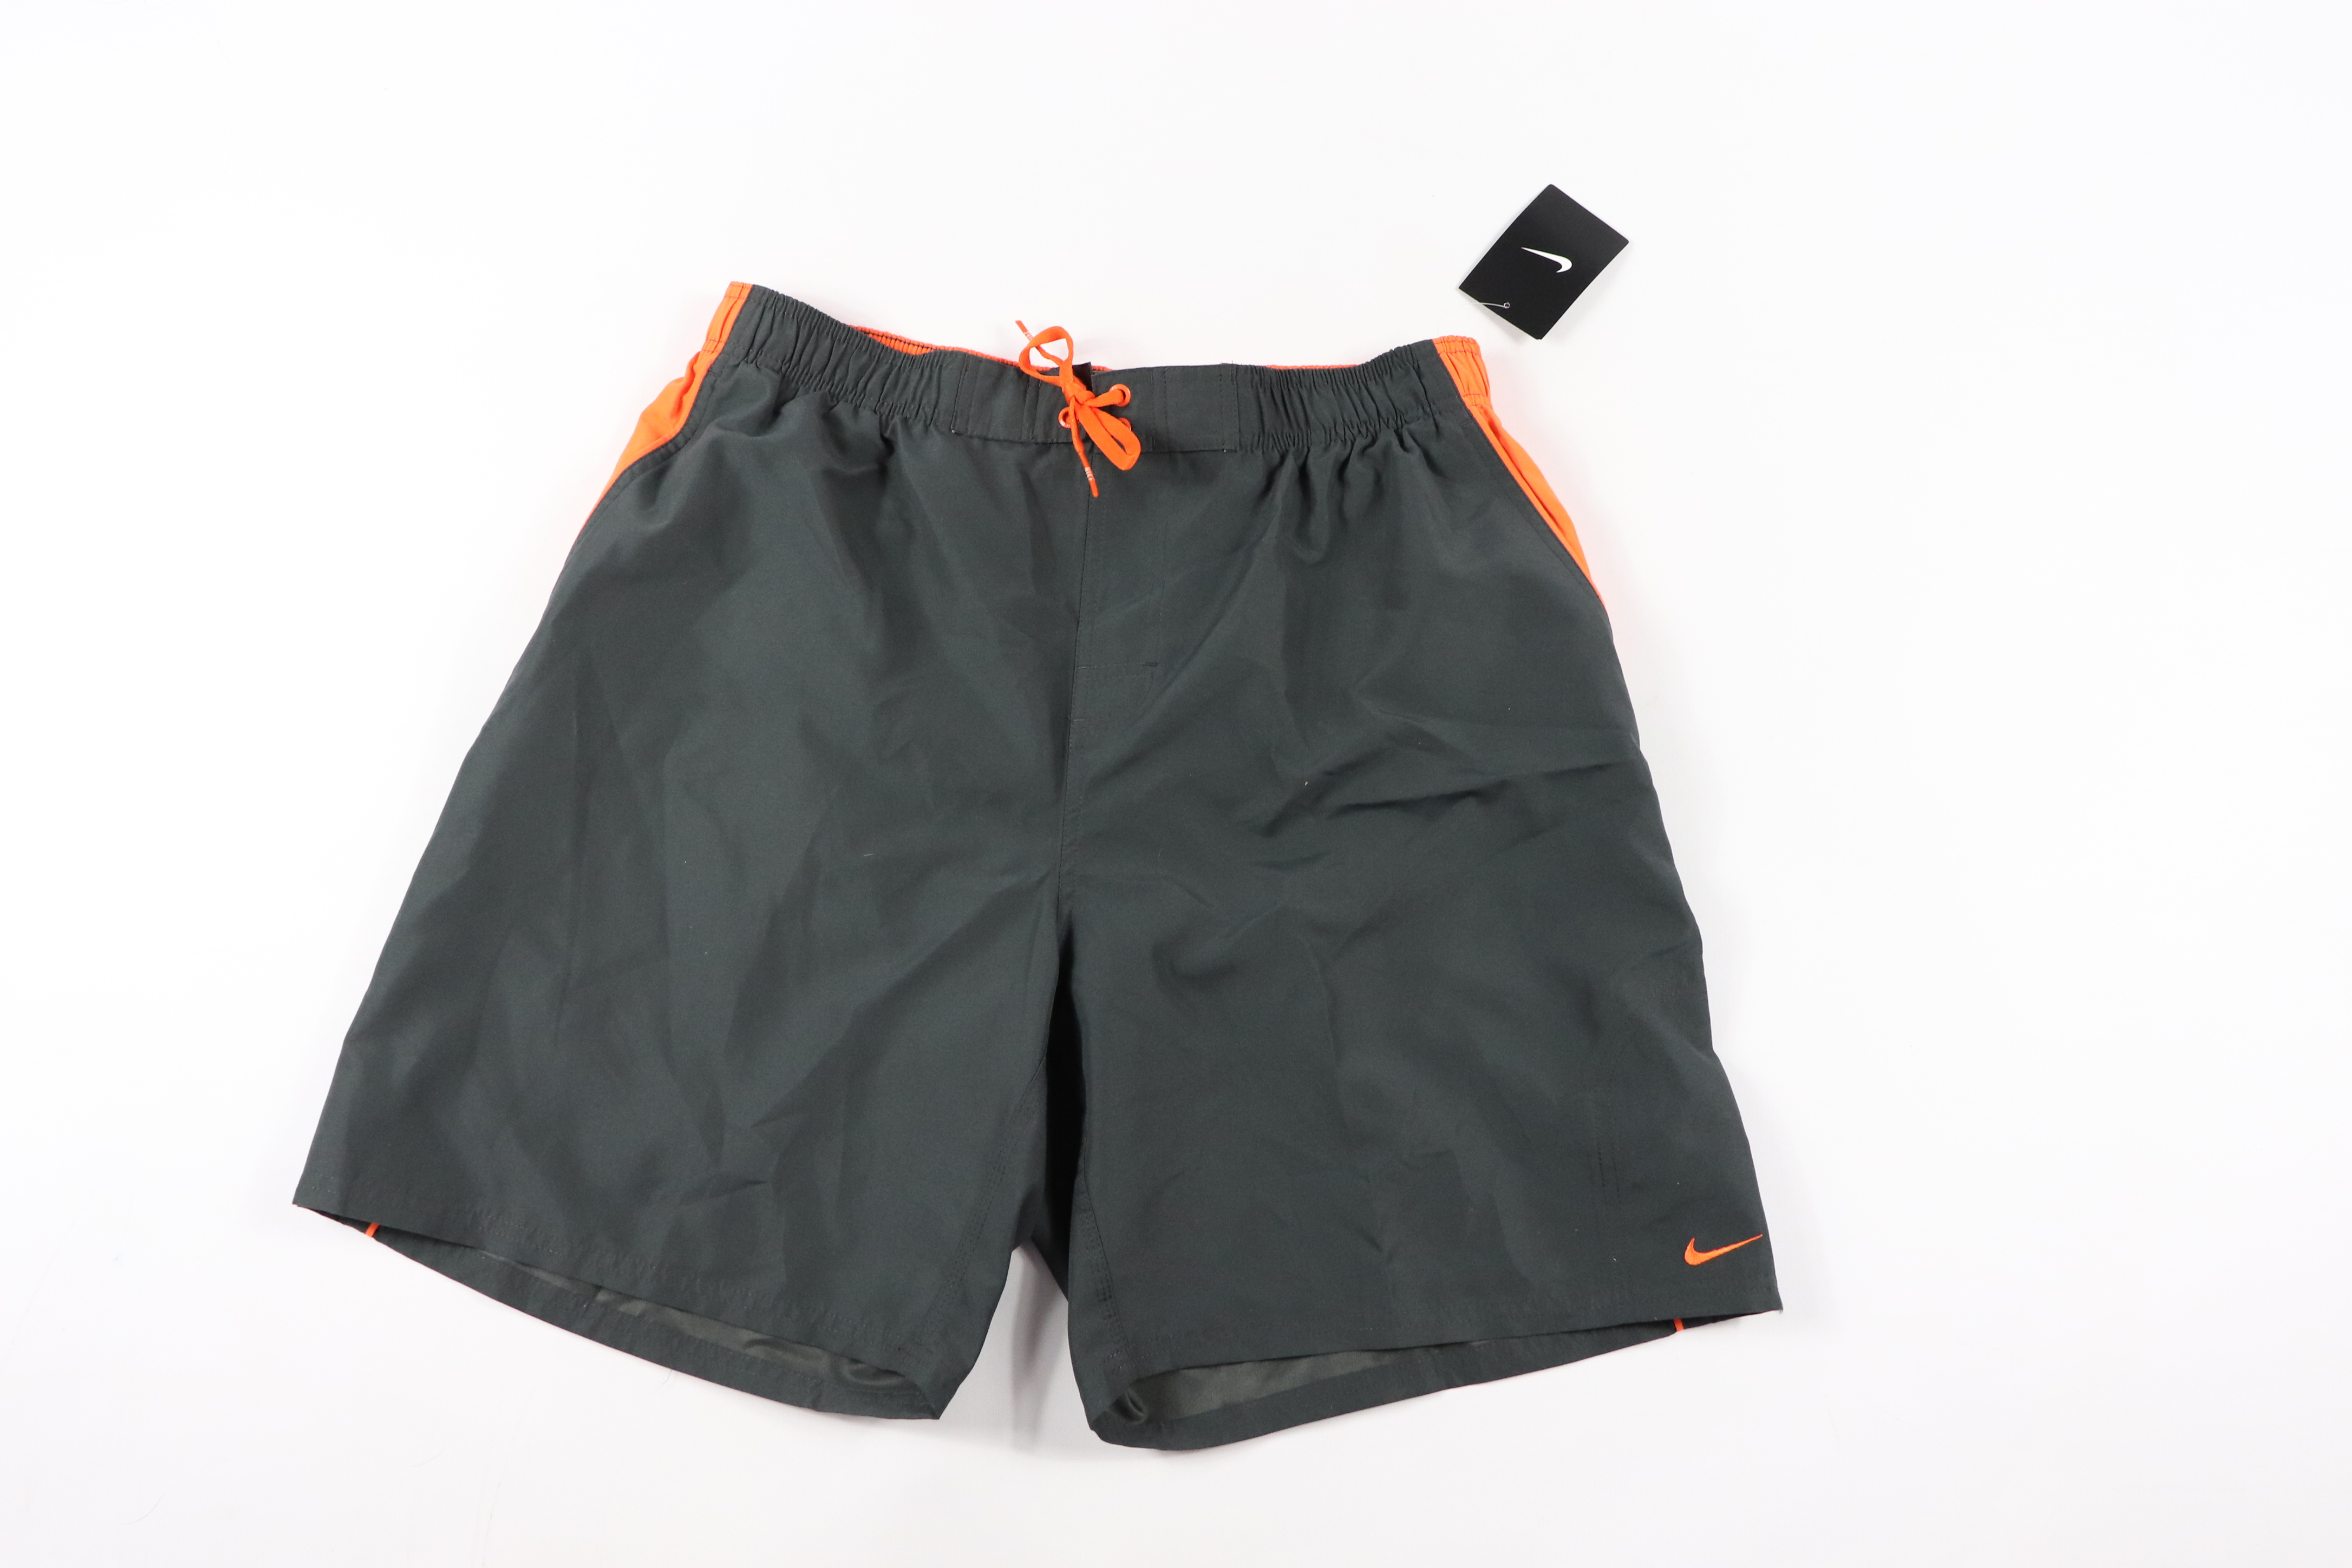 555eaa0167 Nike ×. New Nike Mens XL Spell Out Outdoor Swimming Swim Trunks Shorts ...